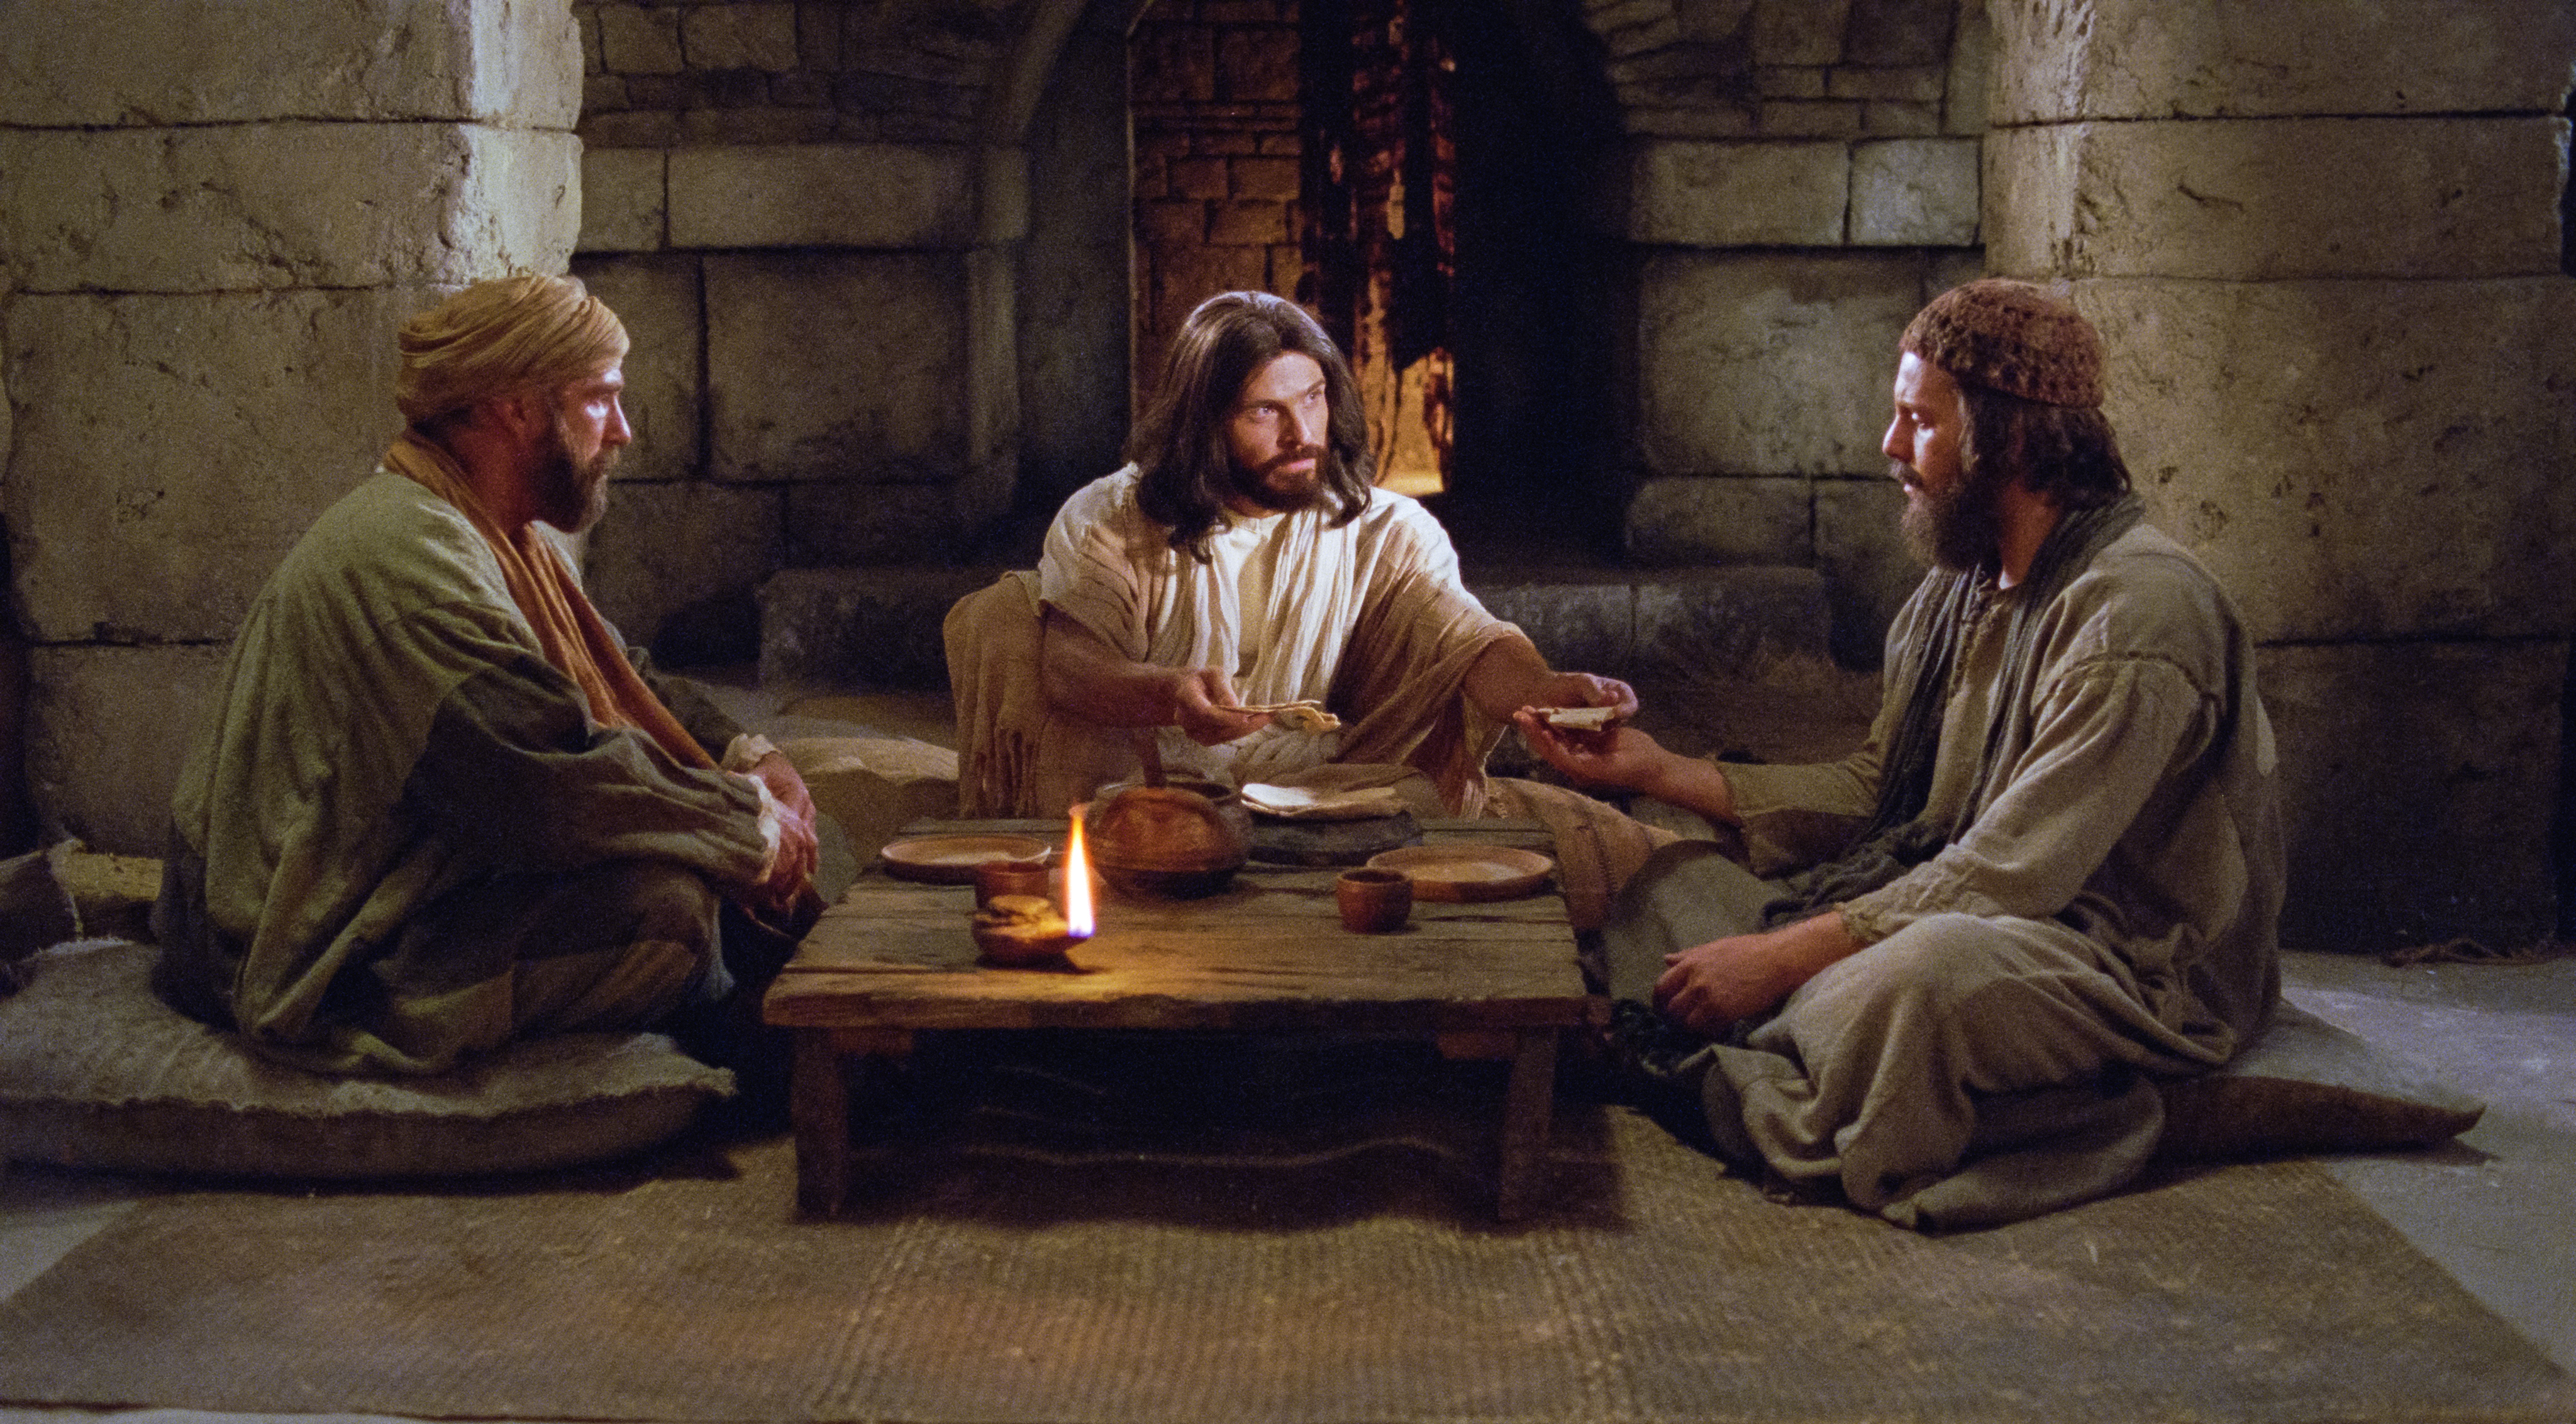 Christ communes with two disciples after having met them on the road to Emmaus.